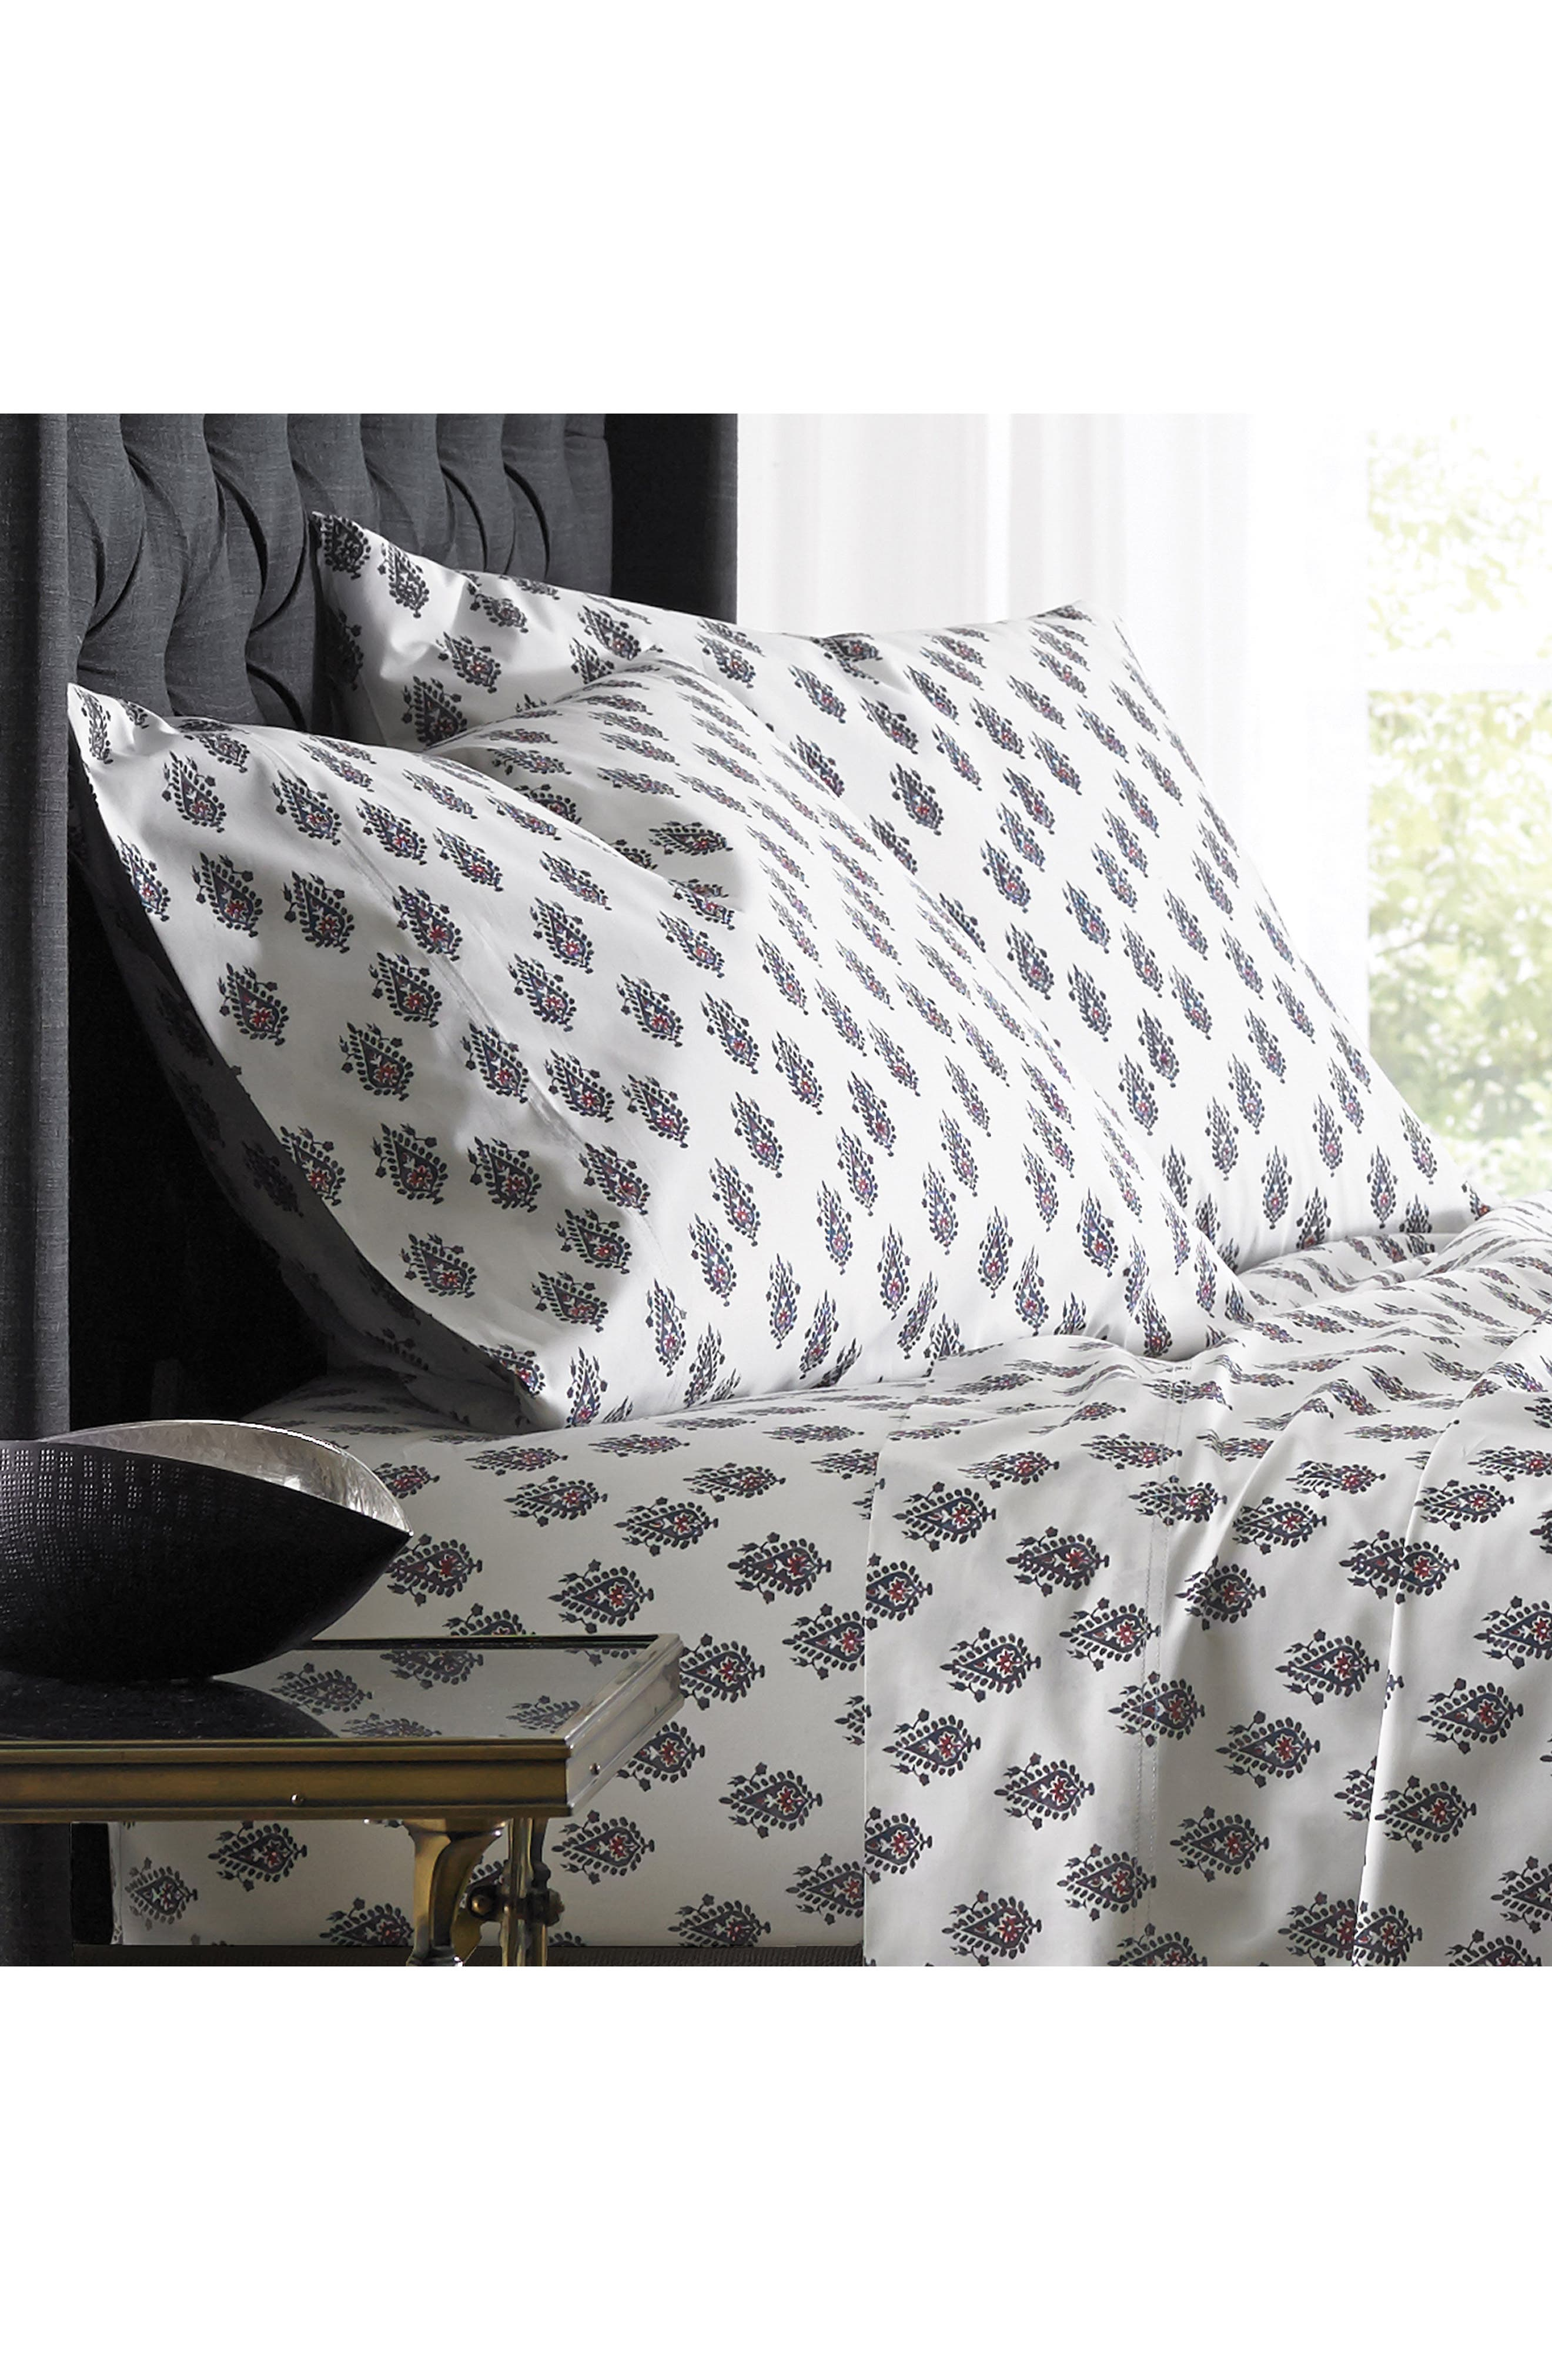 Main Image - DwellStudio Flame Paisely 300 Thread Count Pair of Pillowcases